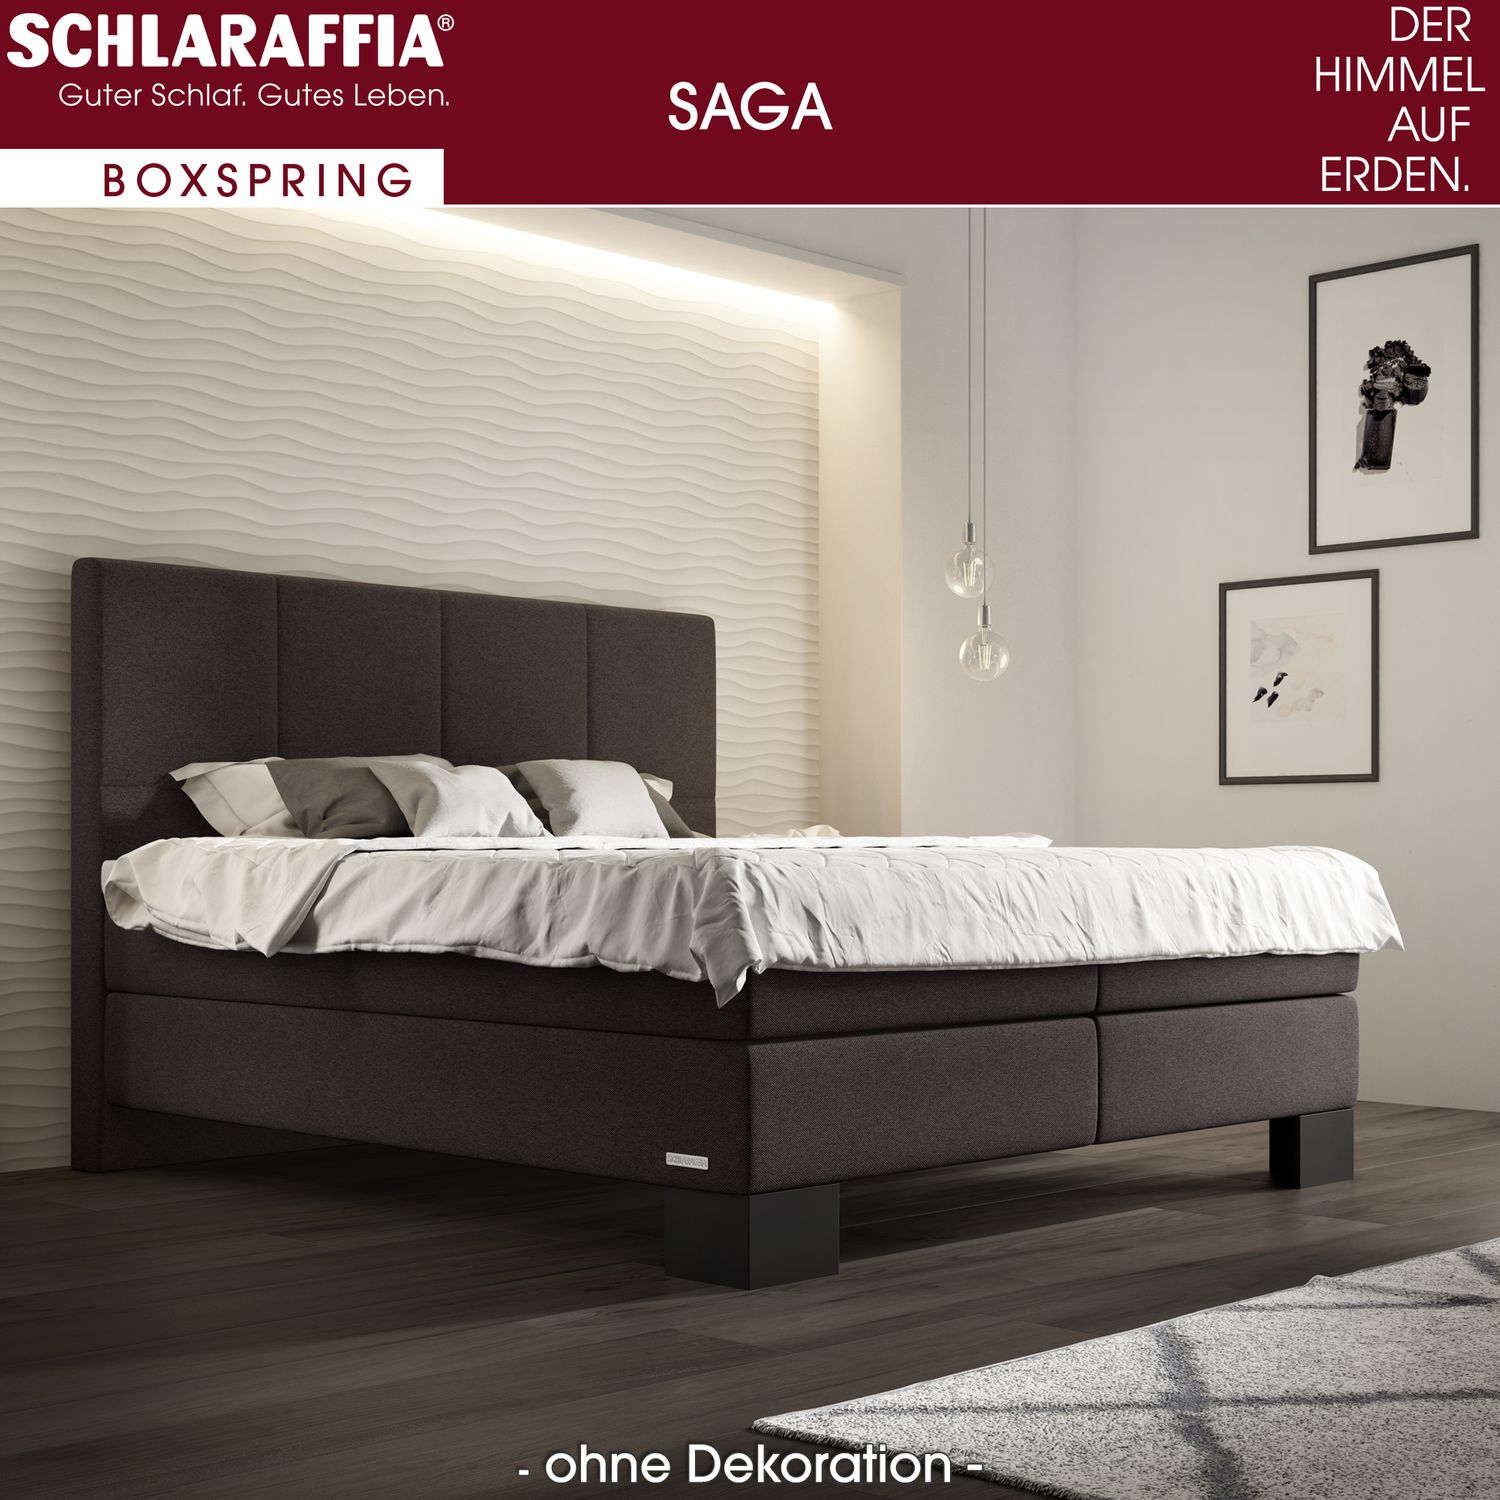 schlaraffia saga box cubic boxspringbett 100x200 cm boxspringbetten 100 x 200 cm. Black Bedroom Furniture Sets. Home Design Ideas